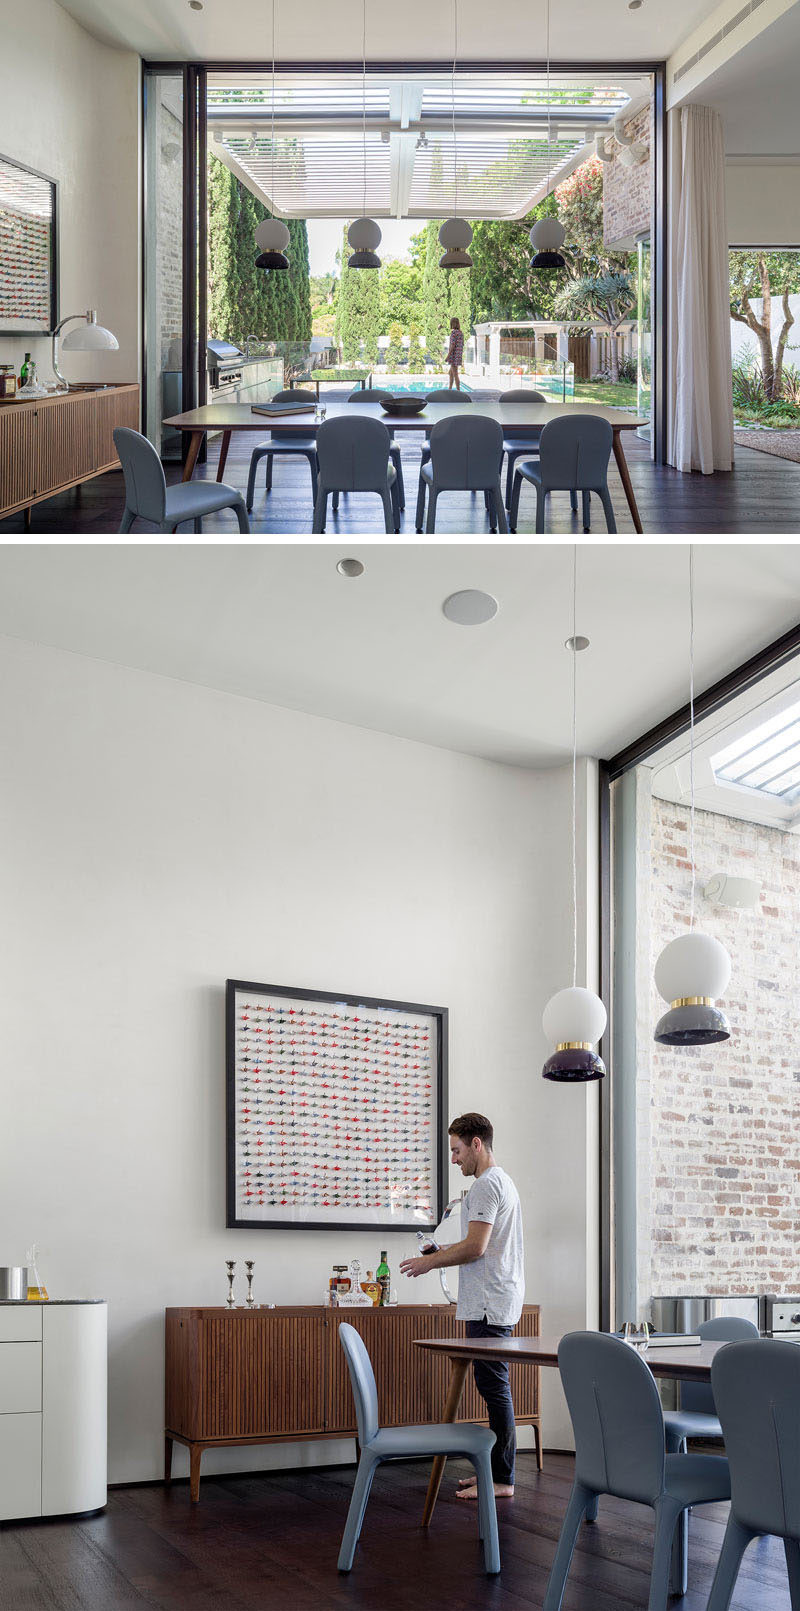 This modern dining room features 13 foot (4m) high glass doors that slide away into a wall cavity to create an unobstructed flow into the garden. High ceilings make the interior of the home feel open and airy.